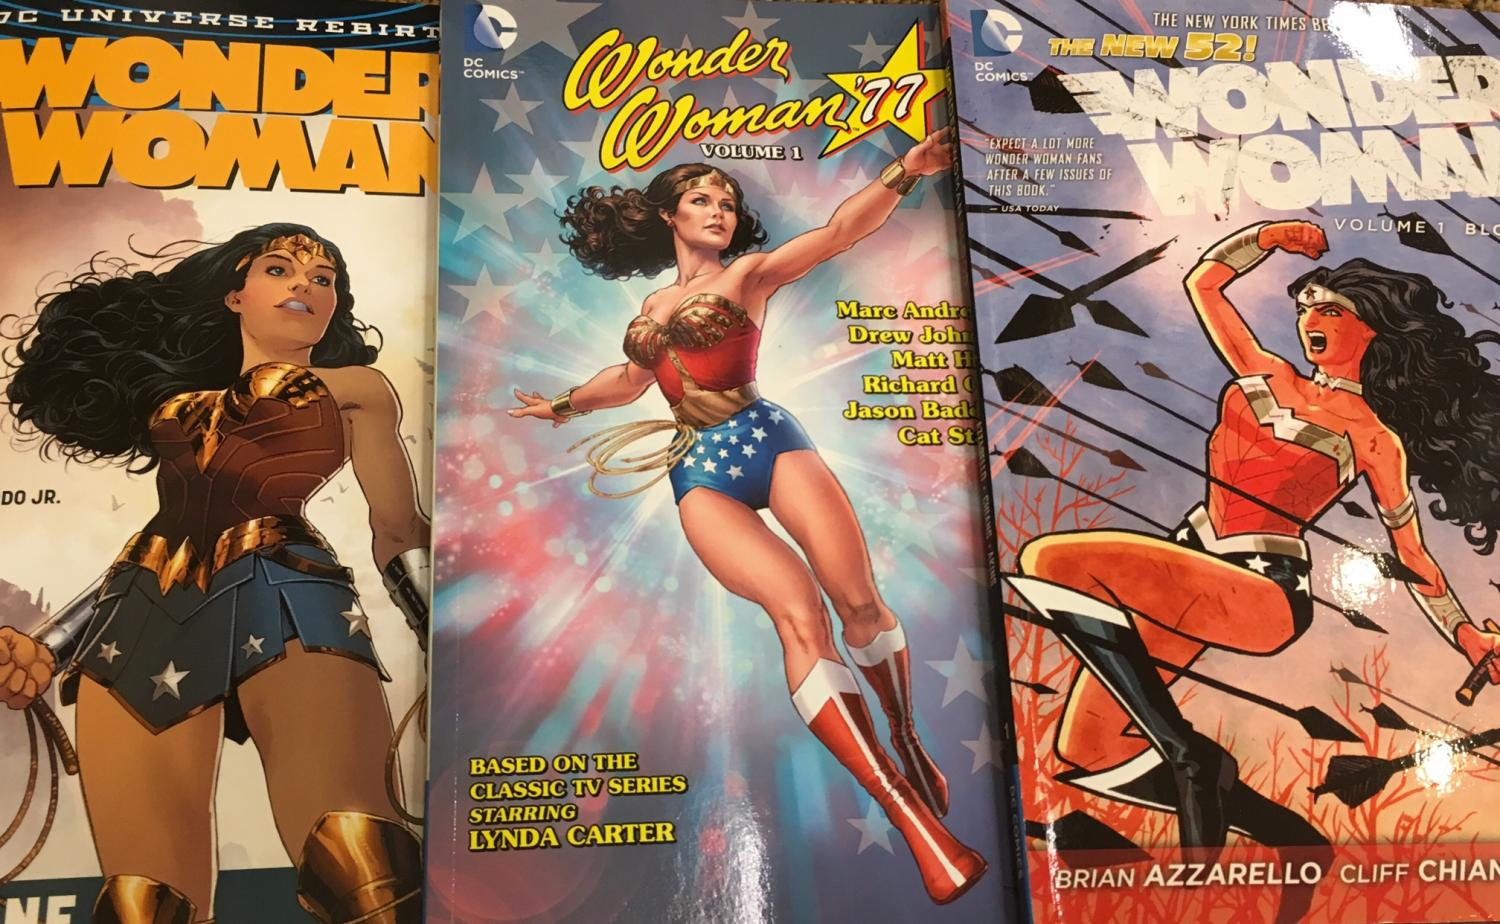 Sameera Rachakonda explains how Wonder Woman not only fights villains, but also stereotypes.